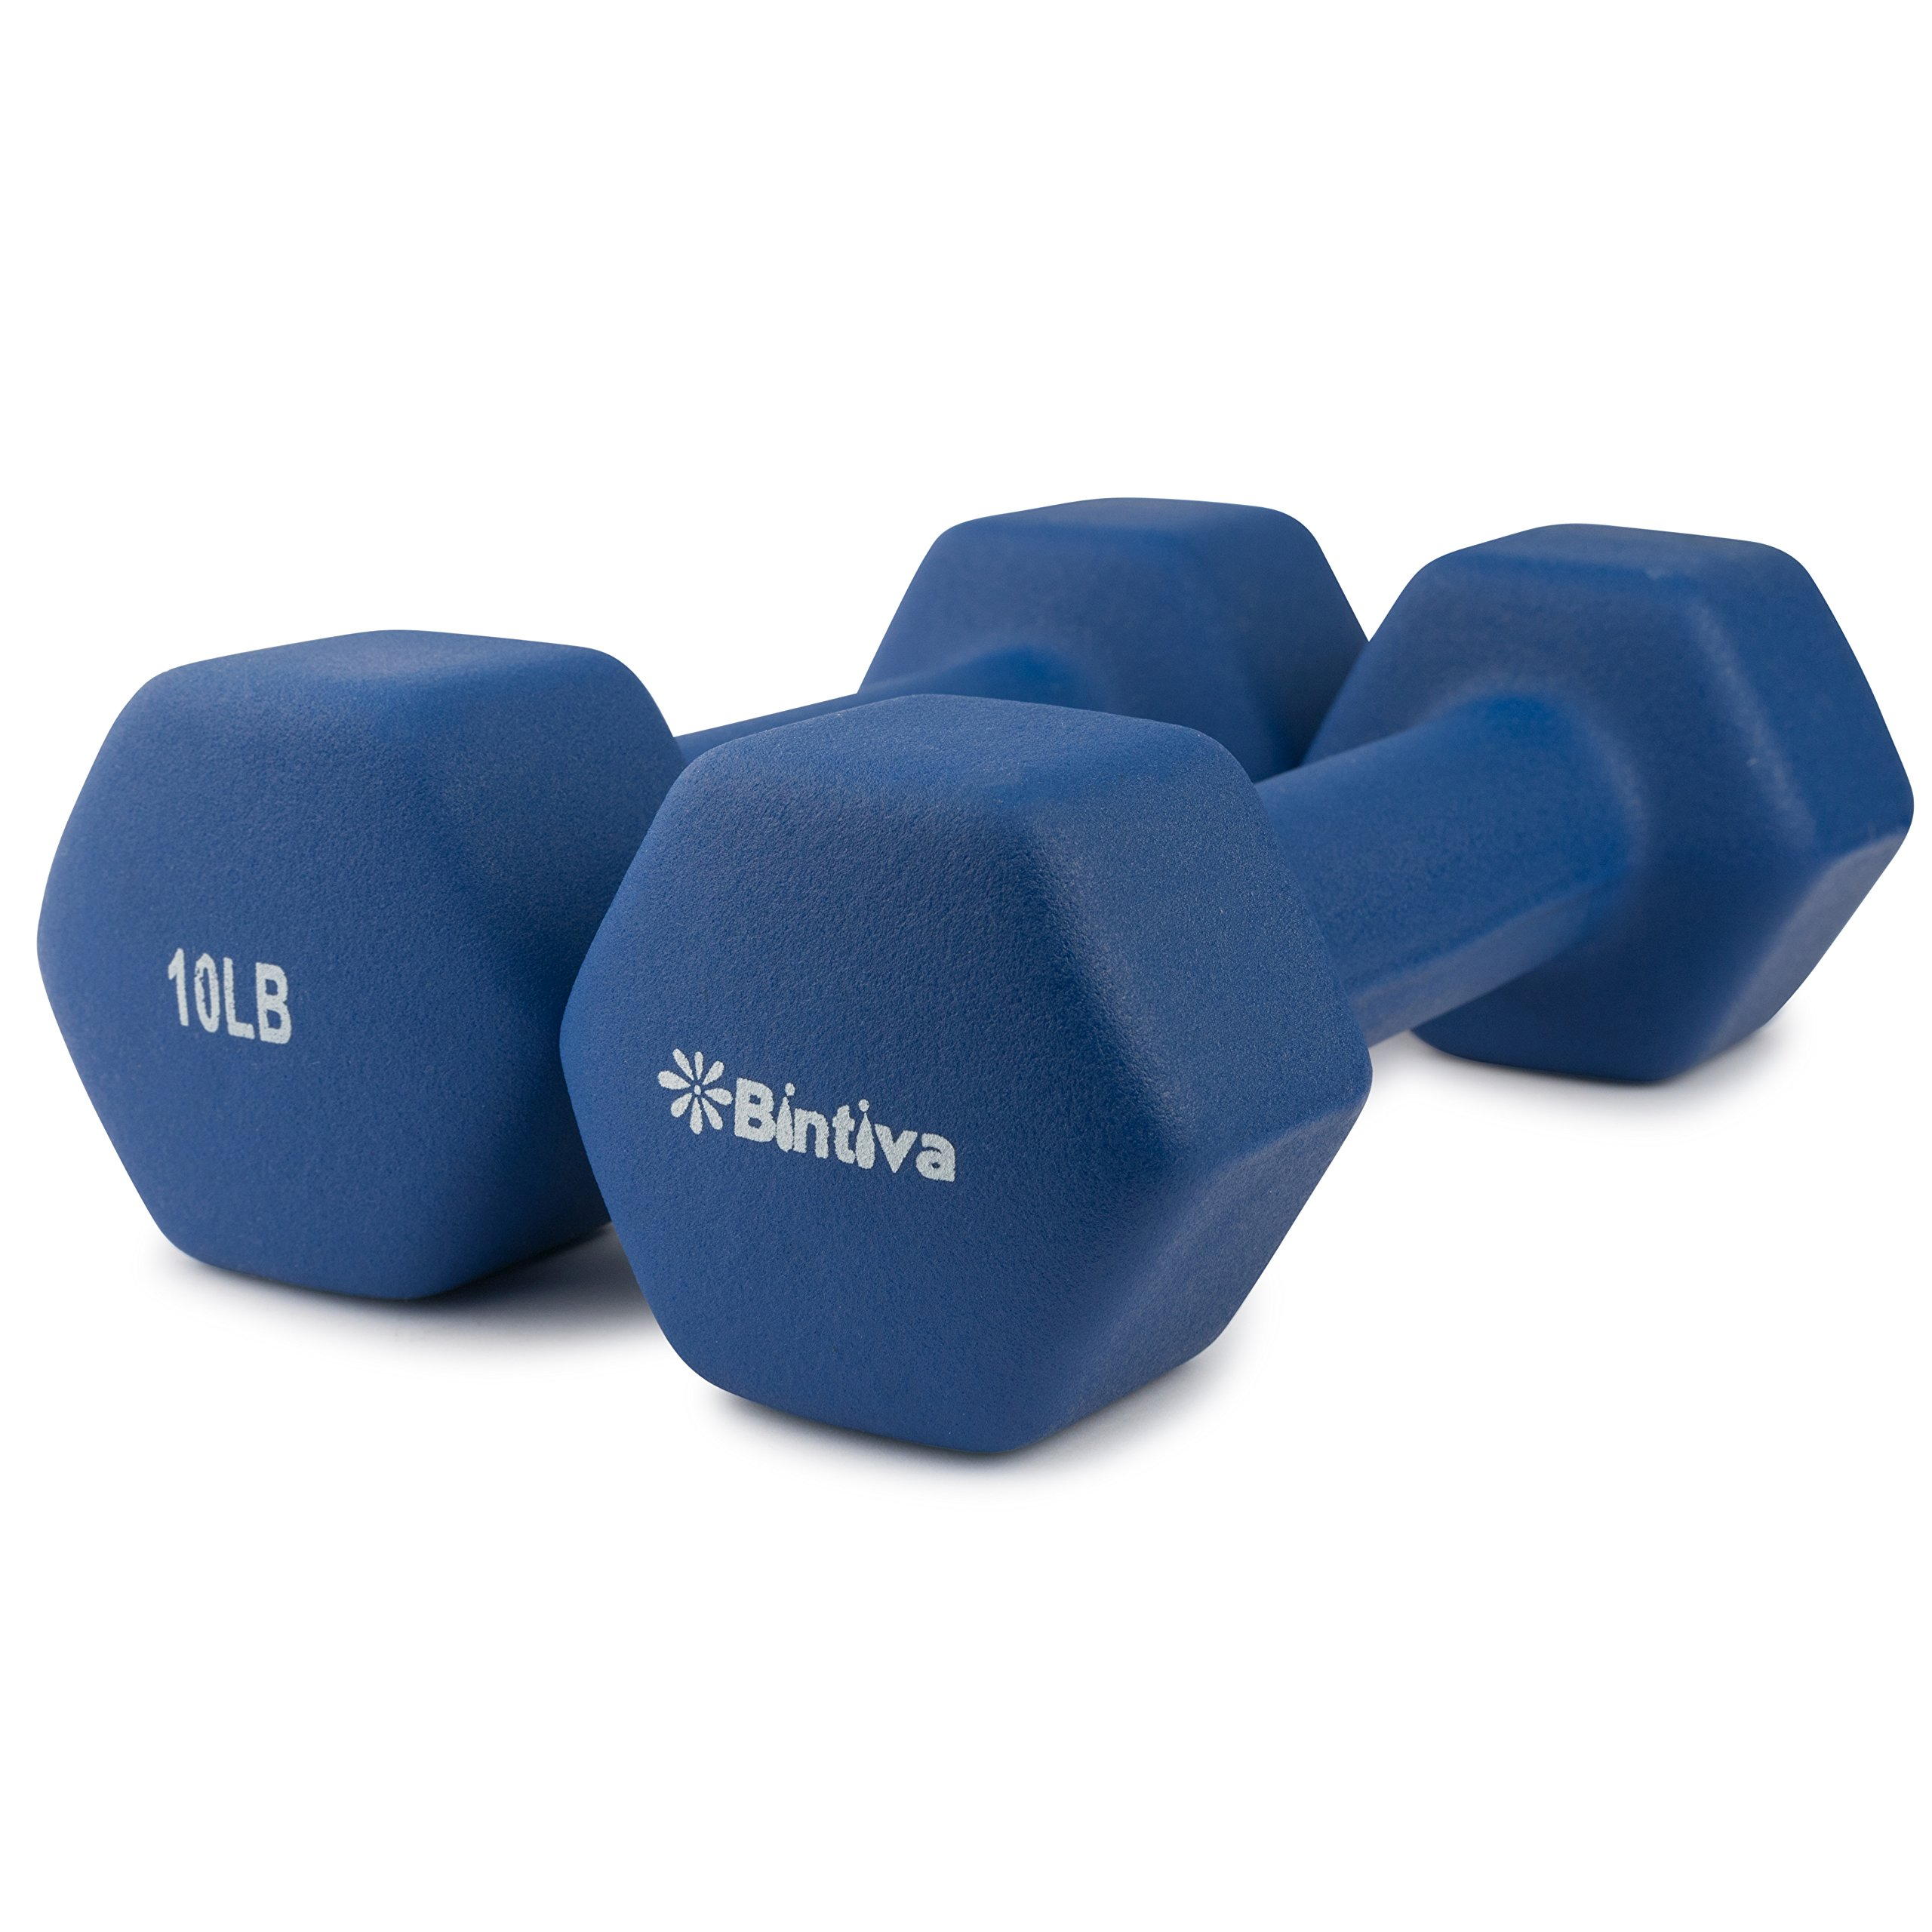 Bintiva Professional Grade, Non Slip Grip, Neoprene Coated Dumbbells 10 LB Pair - Blue